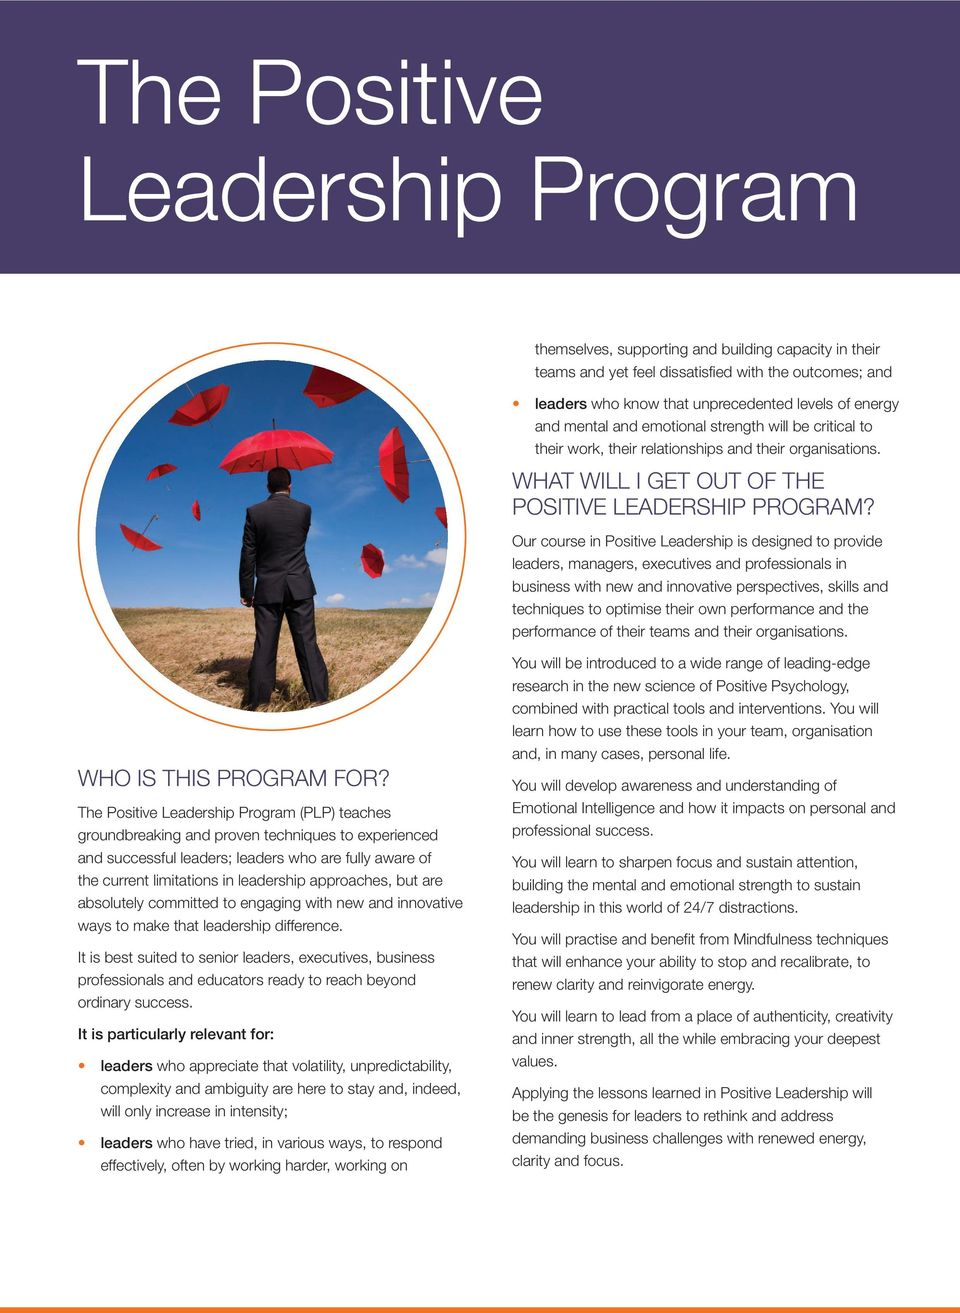 Our course in Positive Leadership is designed to provide leaders, managers, executives and professionals in business with new and innovative perspectives, skills and techniques to optimise their own